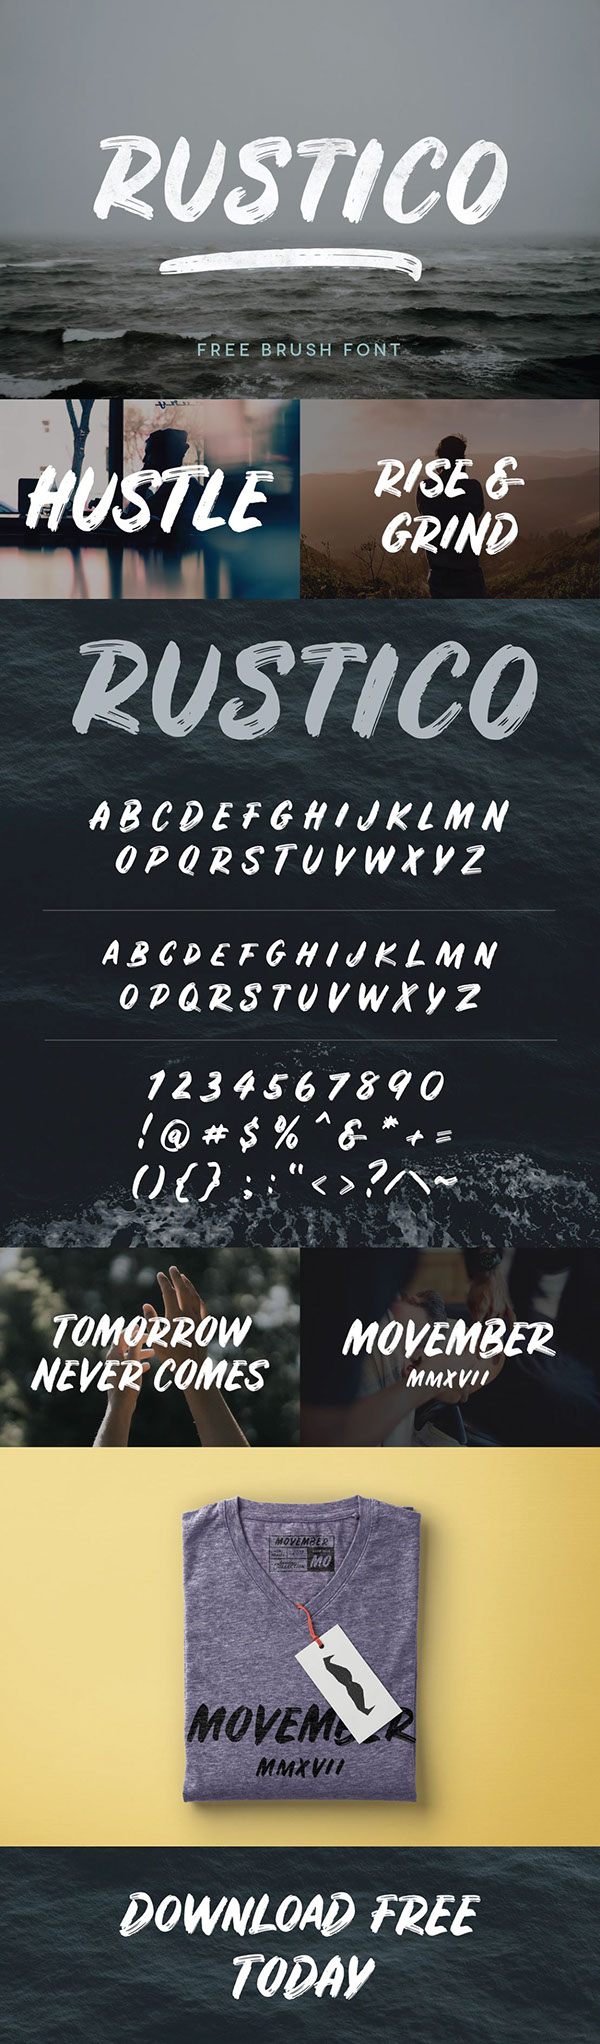 RUSTICO - FREE BOLD BRUSH FONT on Behance